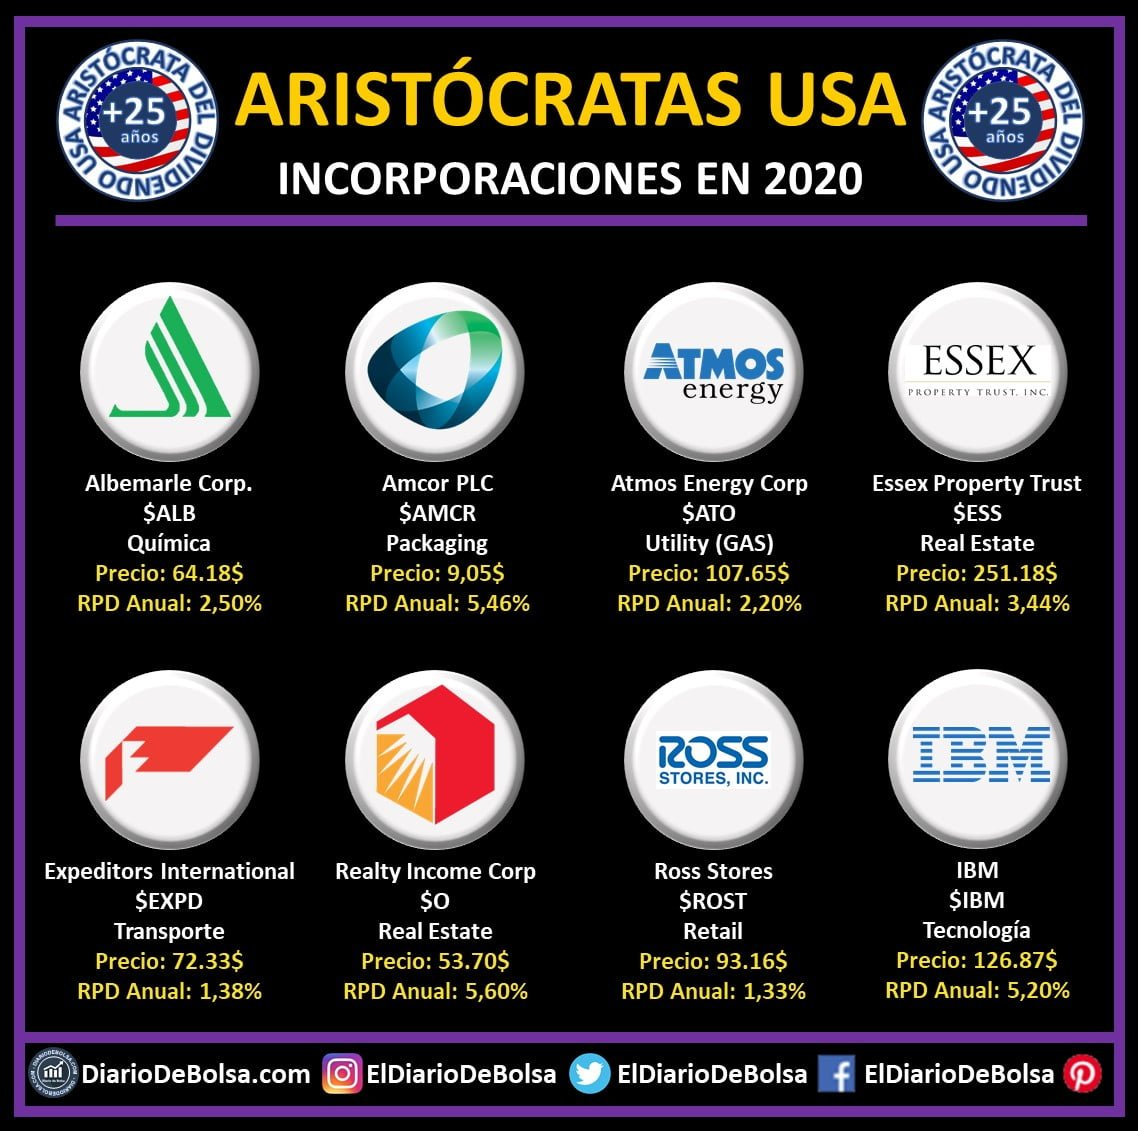 Nuevas aristócratas del dividendo 2020: Albemarle Corp, Amcor PLC, Atmos Energy Corp, Essex Property Trust, Expeditors International, Realty Income Corp, Ross Stores. US Dividend Aristocrats, International Business Machines IBM